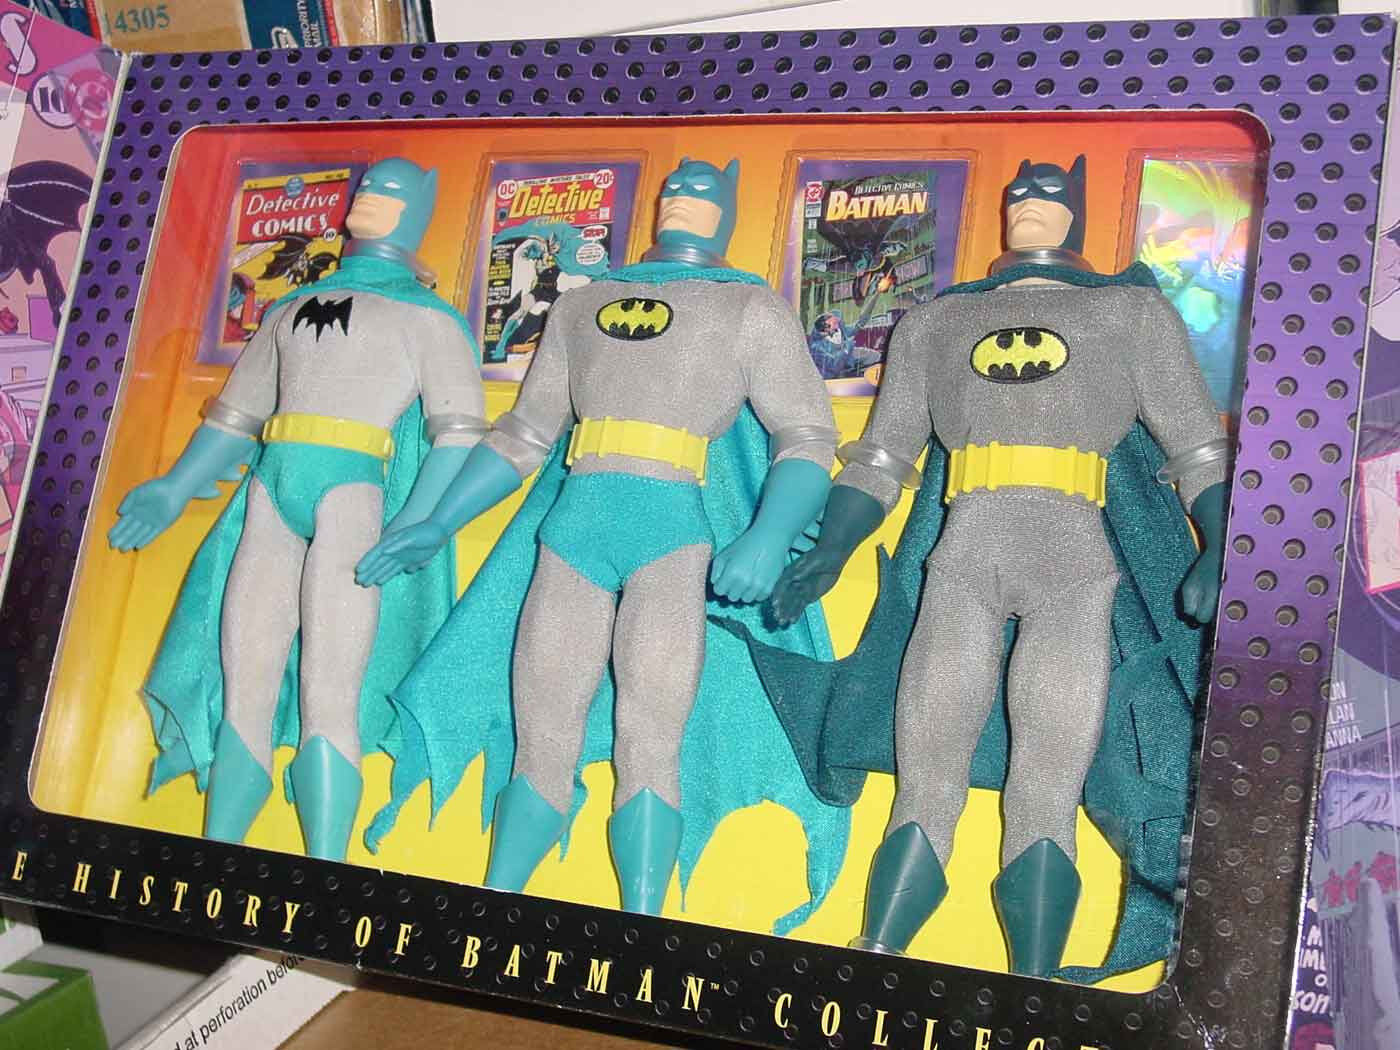 HISTORY OF BATMAN COLLECTION COLLECTION COLLECTION 3 x 12   1940s 1970s 1990s ERROR FAO SCHWARTZ 0a3c68